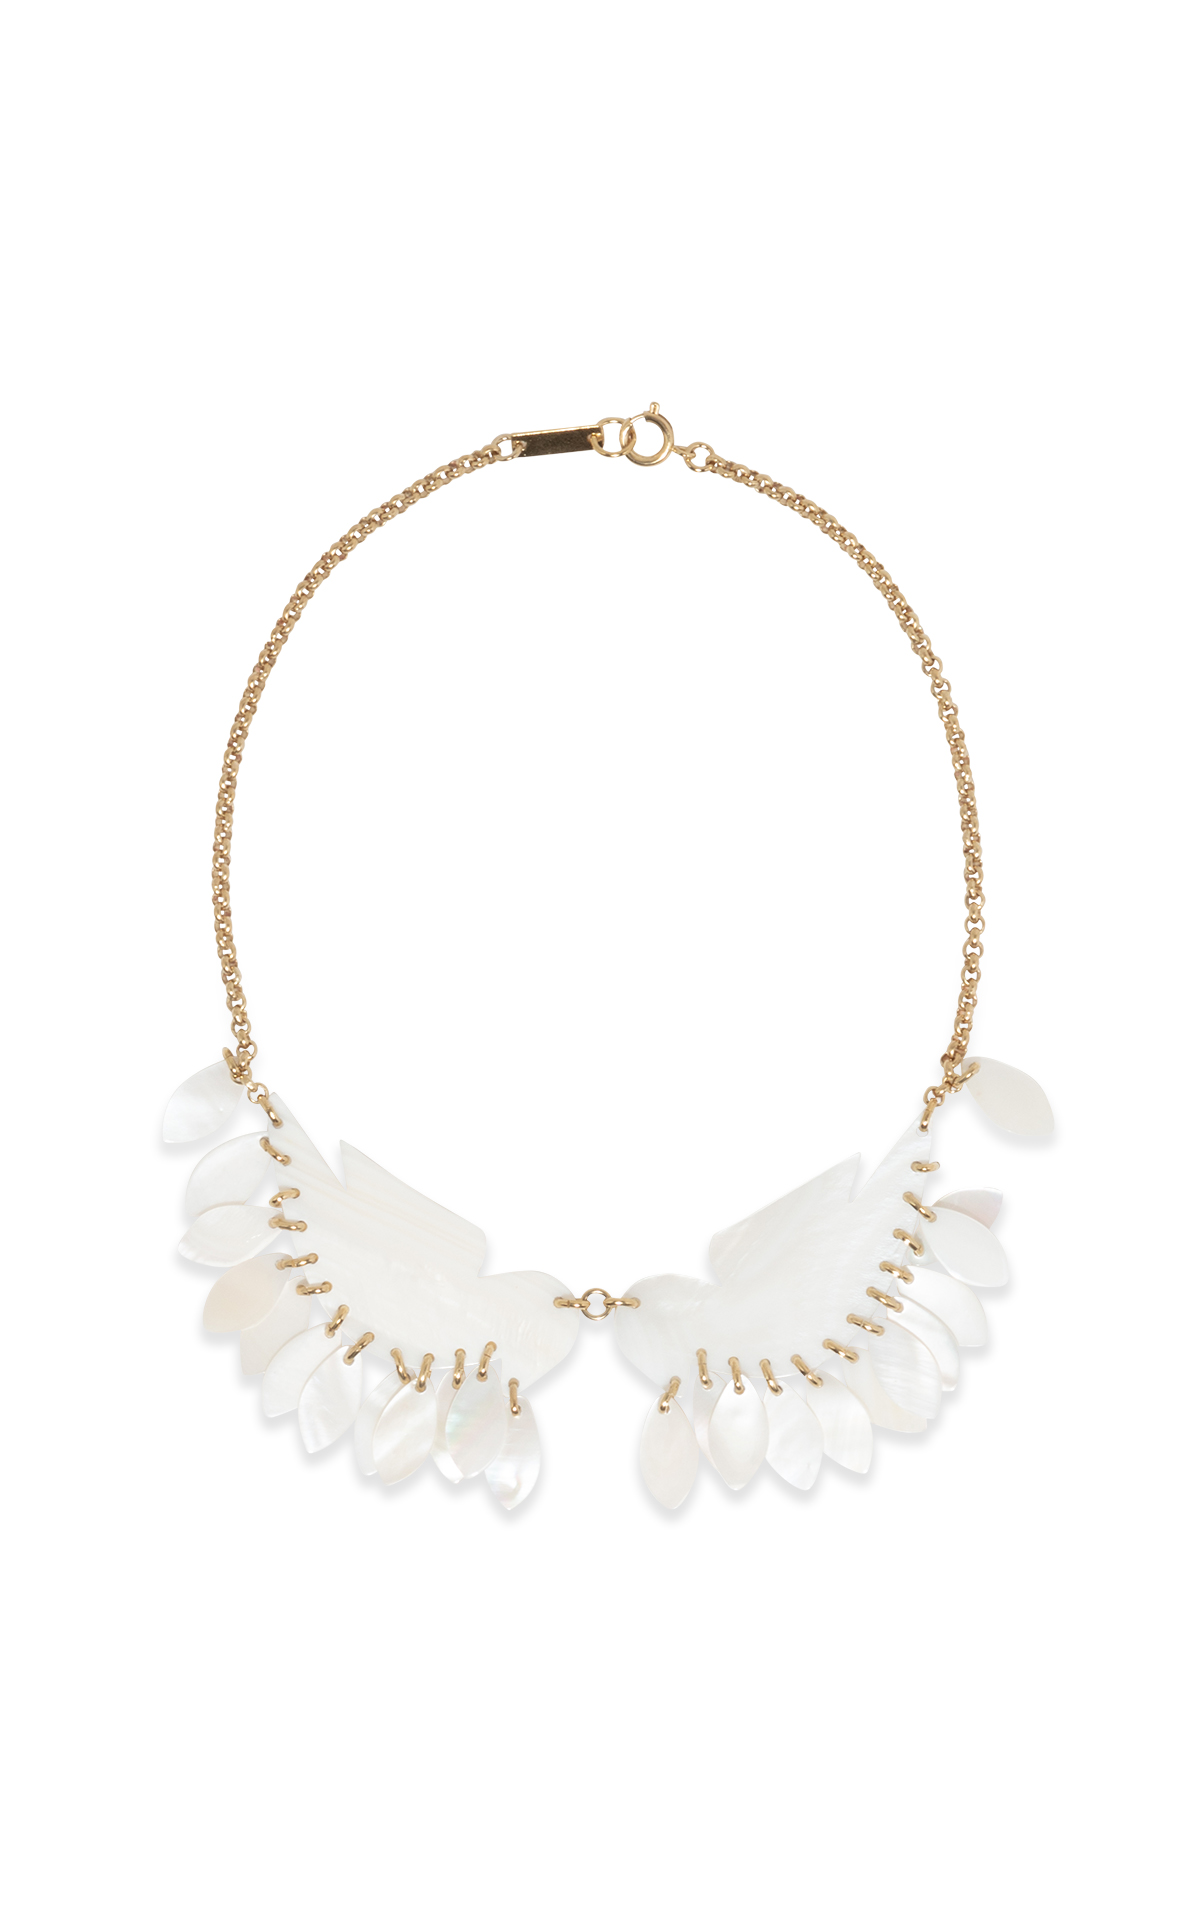 La Vallée Village Isabel Marant White detail necklace